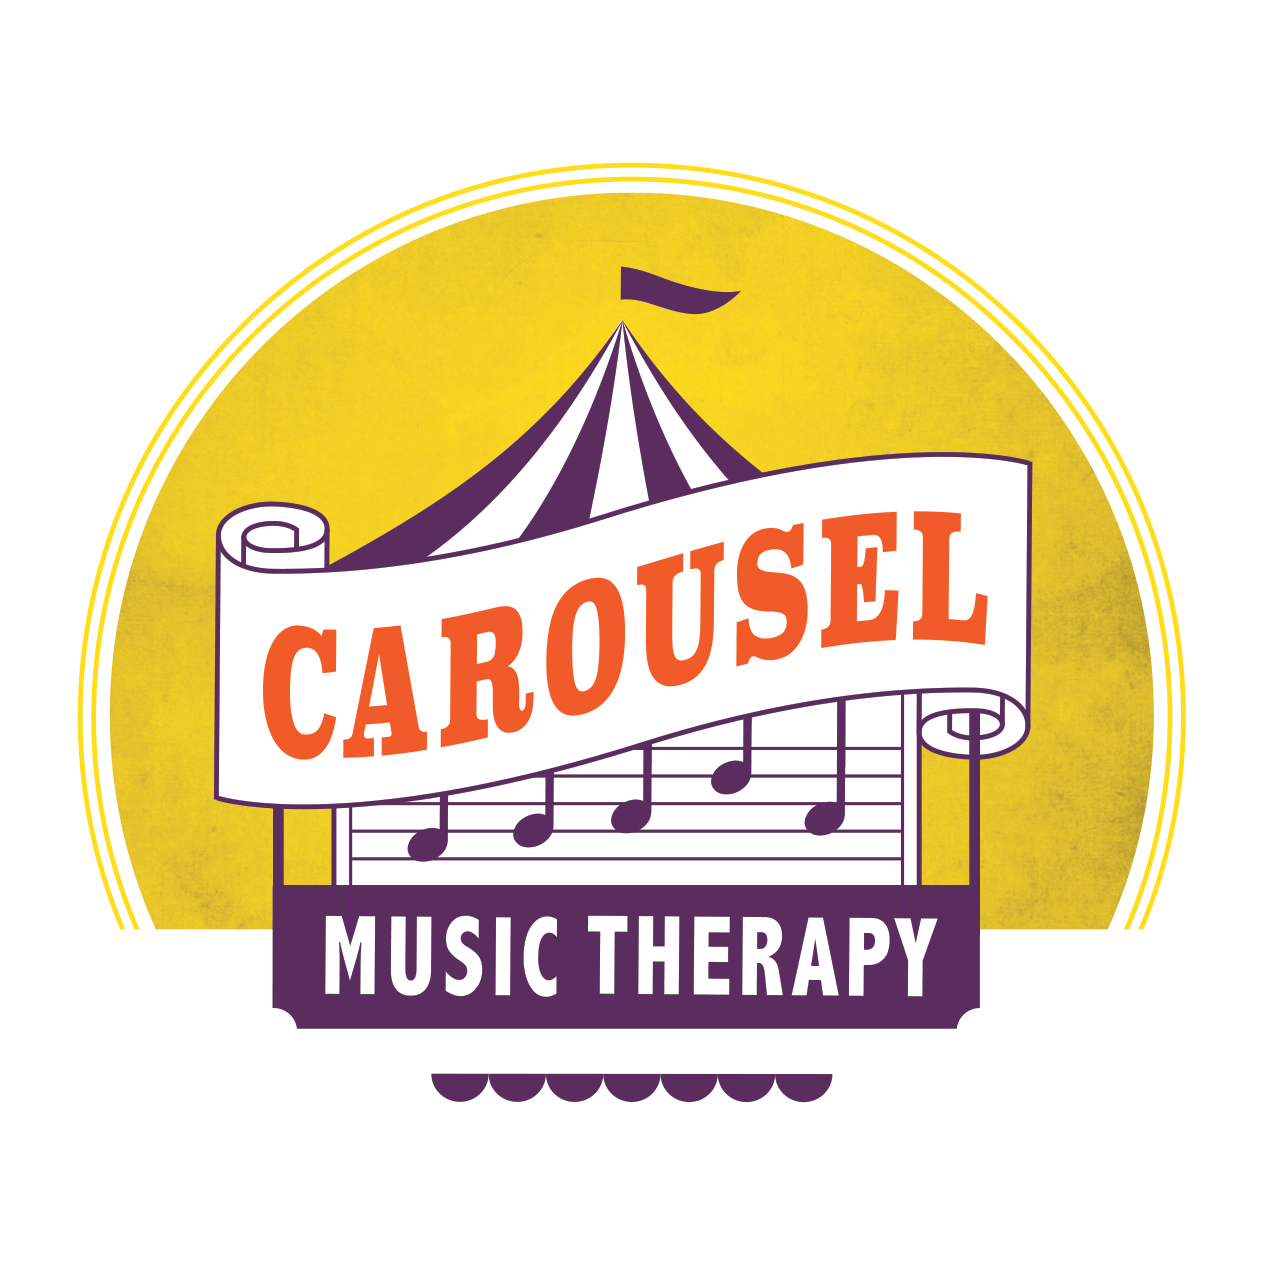 Carousel Music Therapy